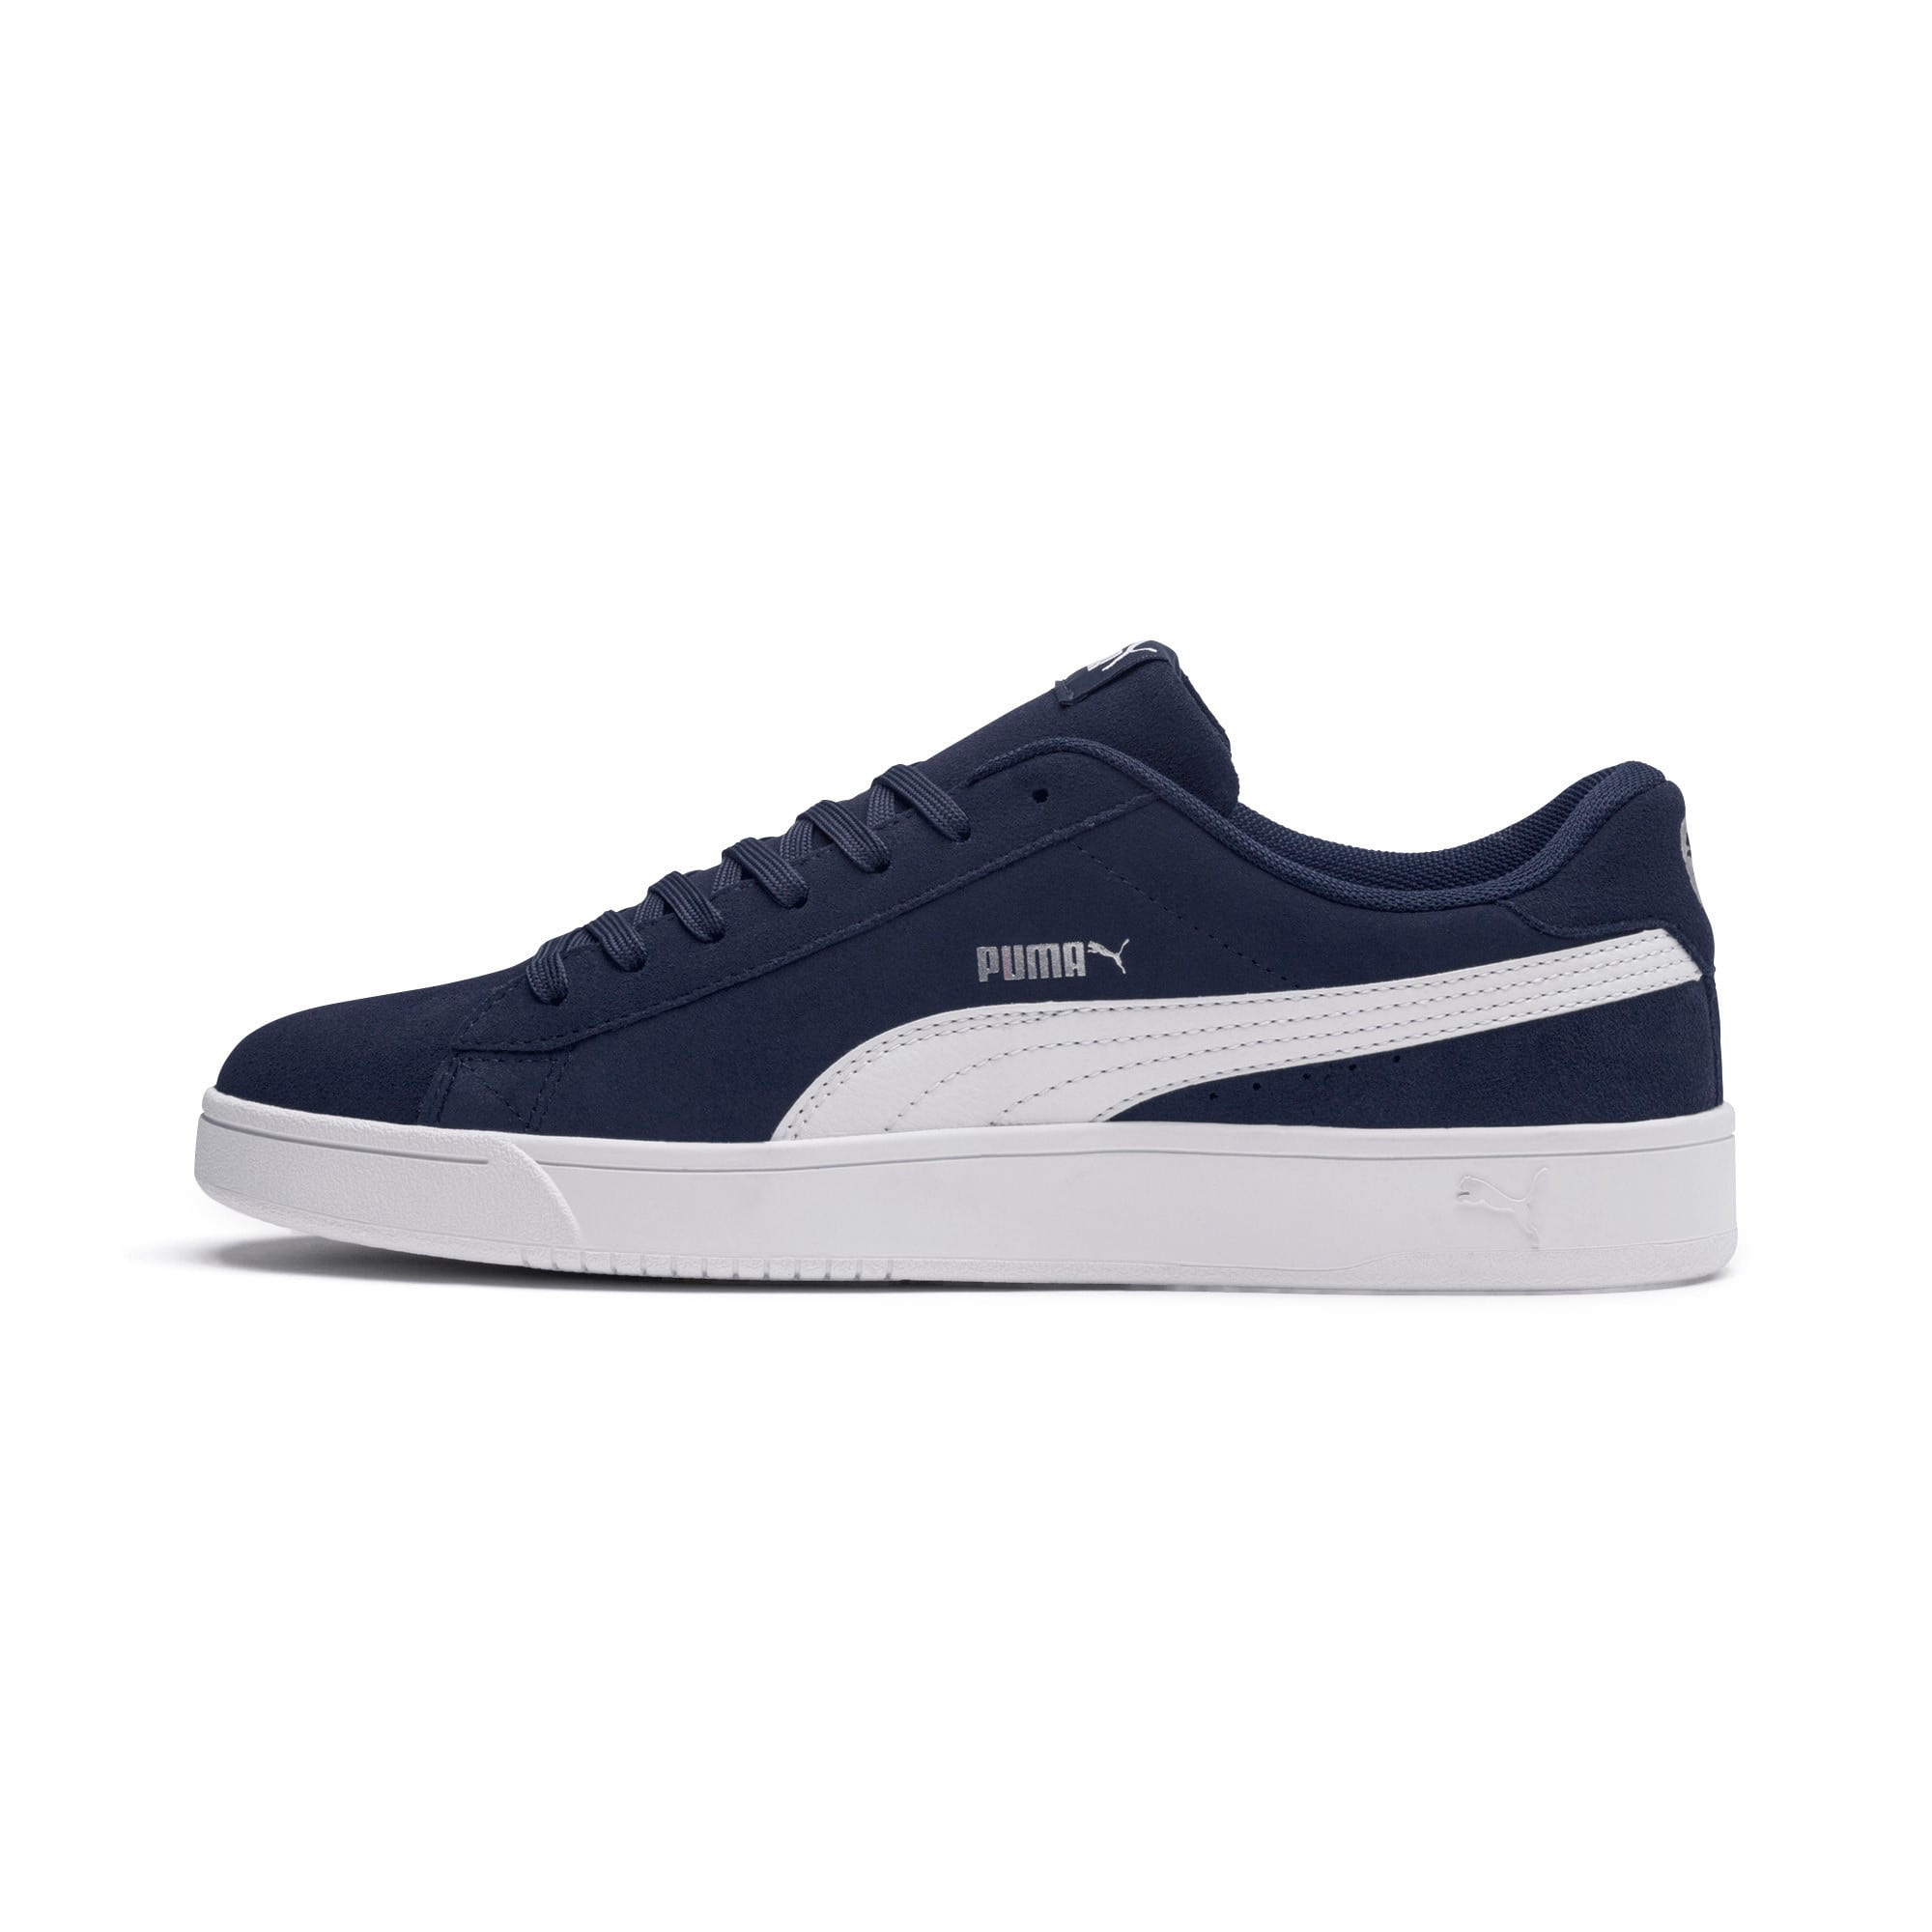 Thumbnail 1 of Court Breaker Derby Trainers, Peacoat-Puma White, medium-IND